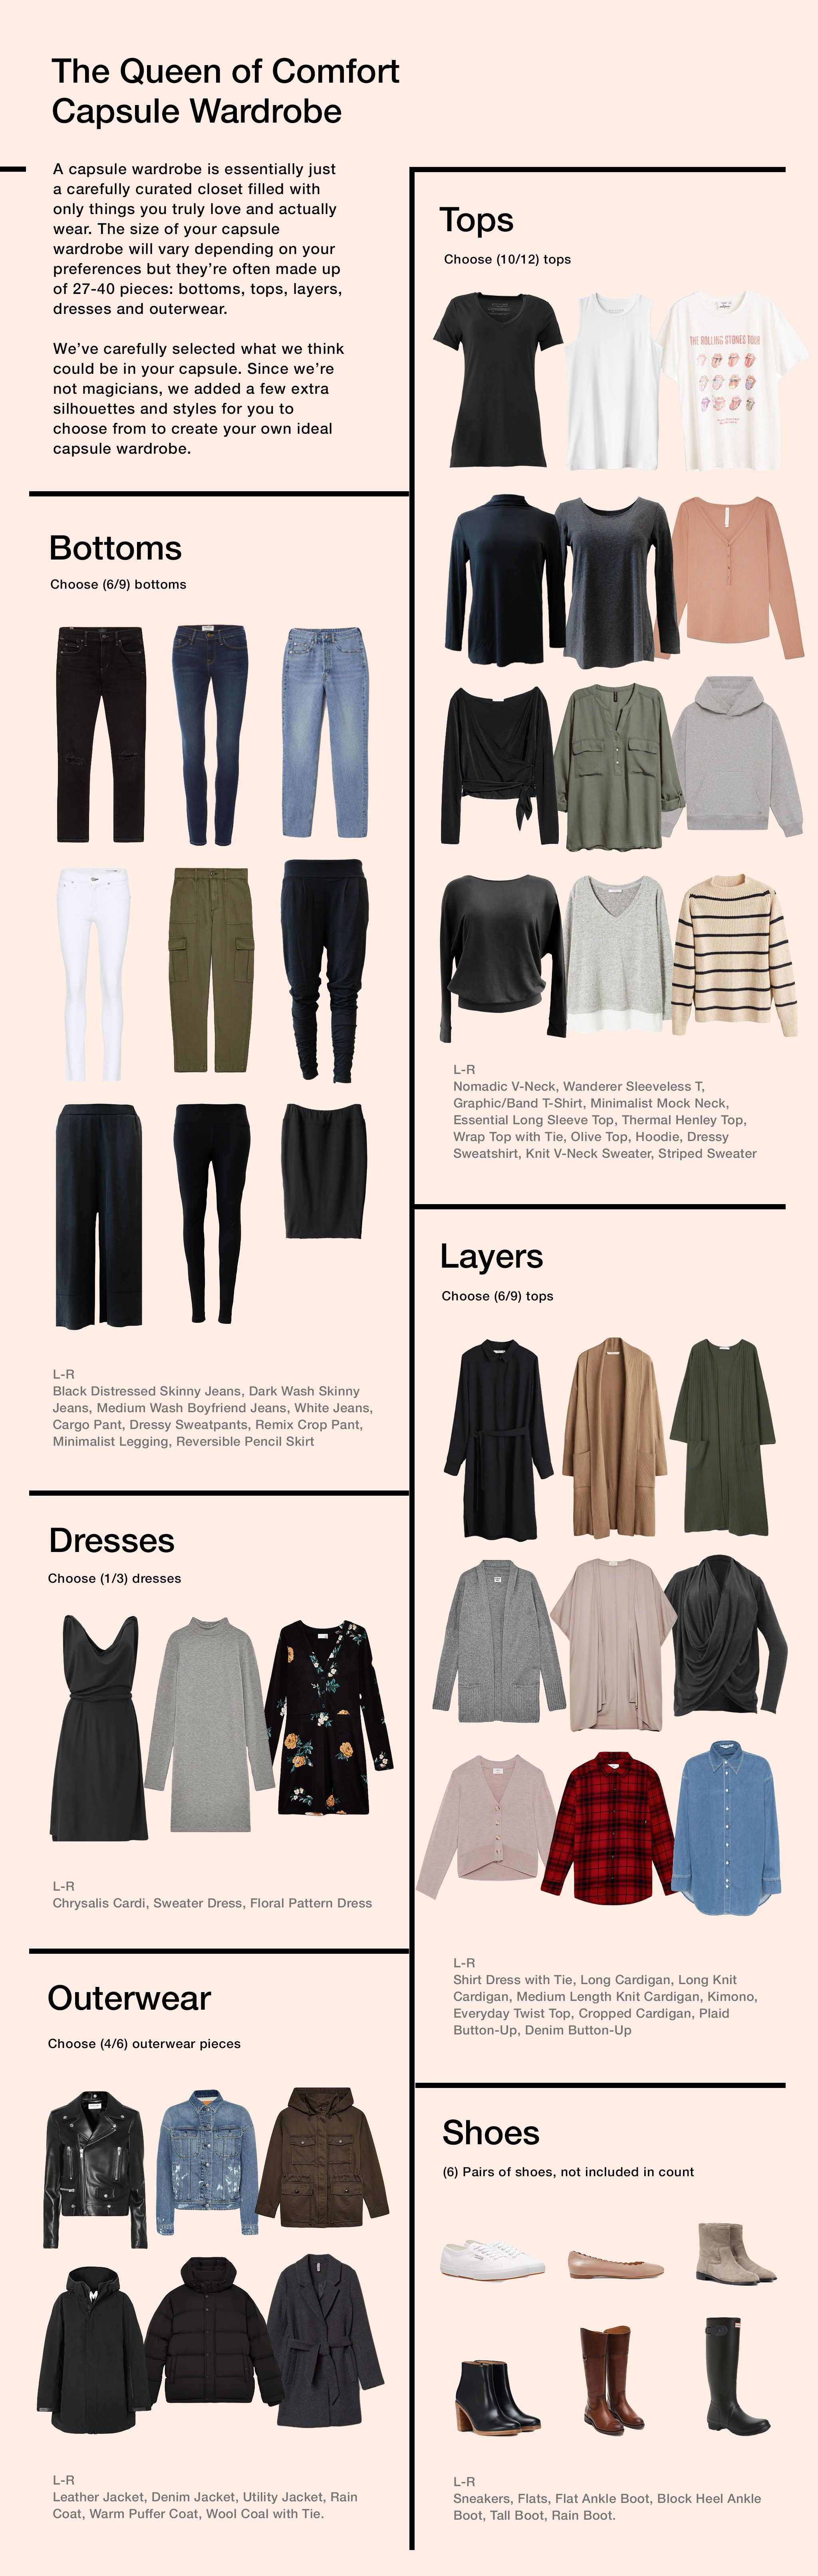 5c6b5a21aae56 What s your Ideal capsule Wardrobe  Take the quiz to find out!